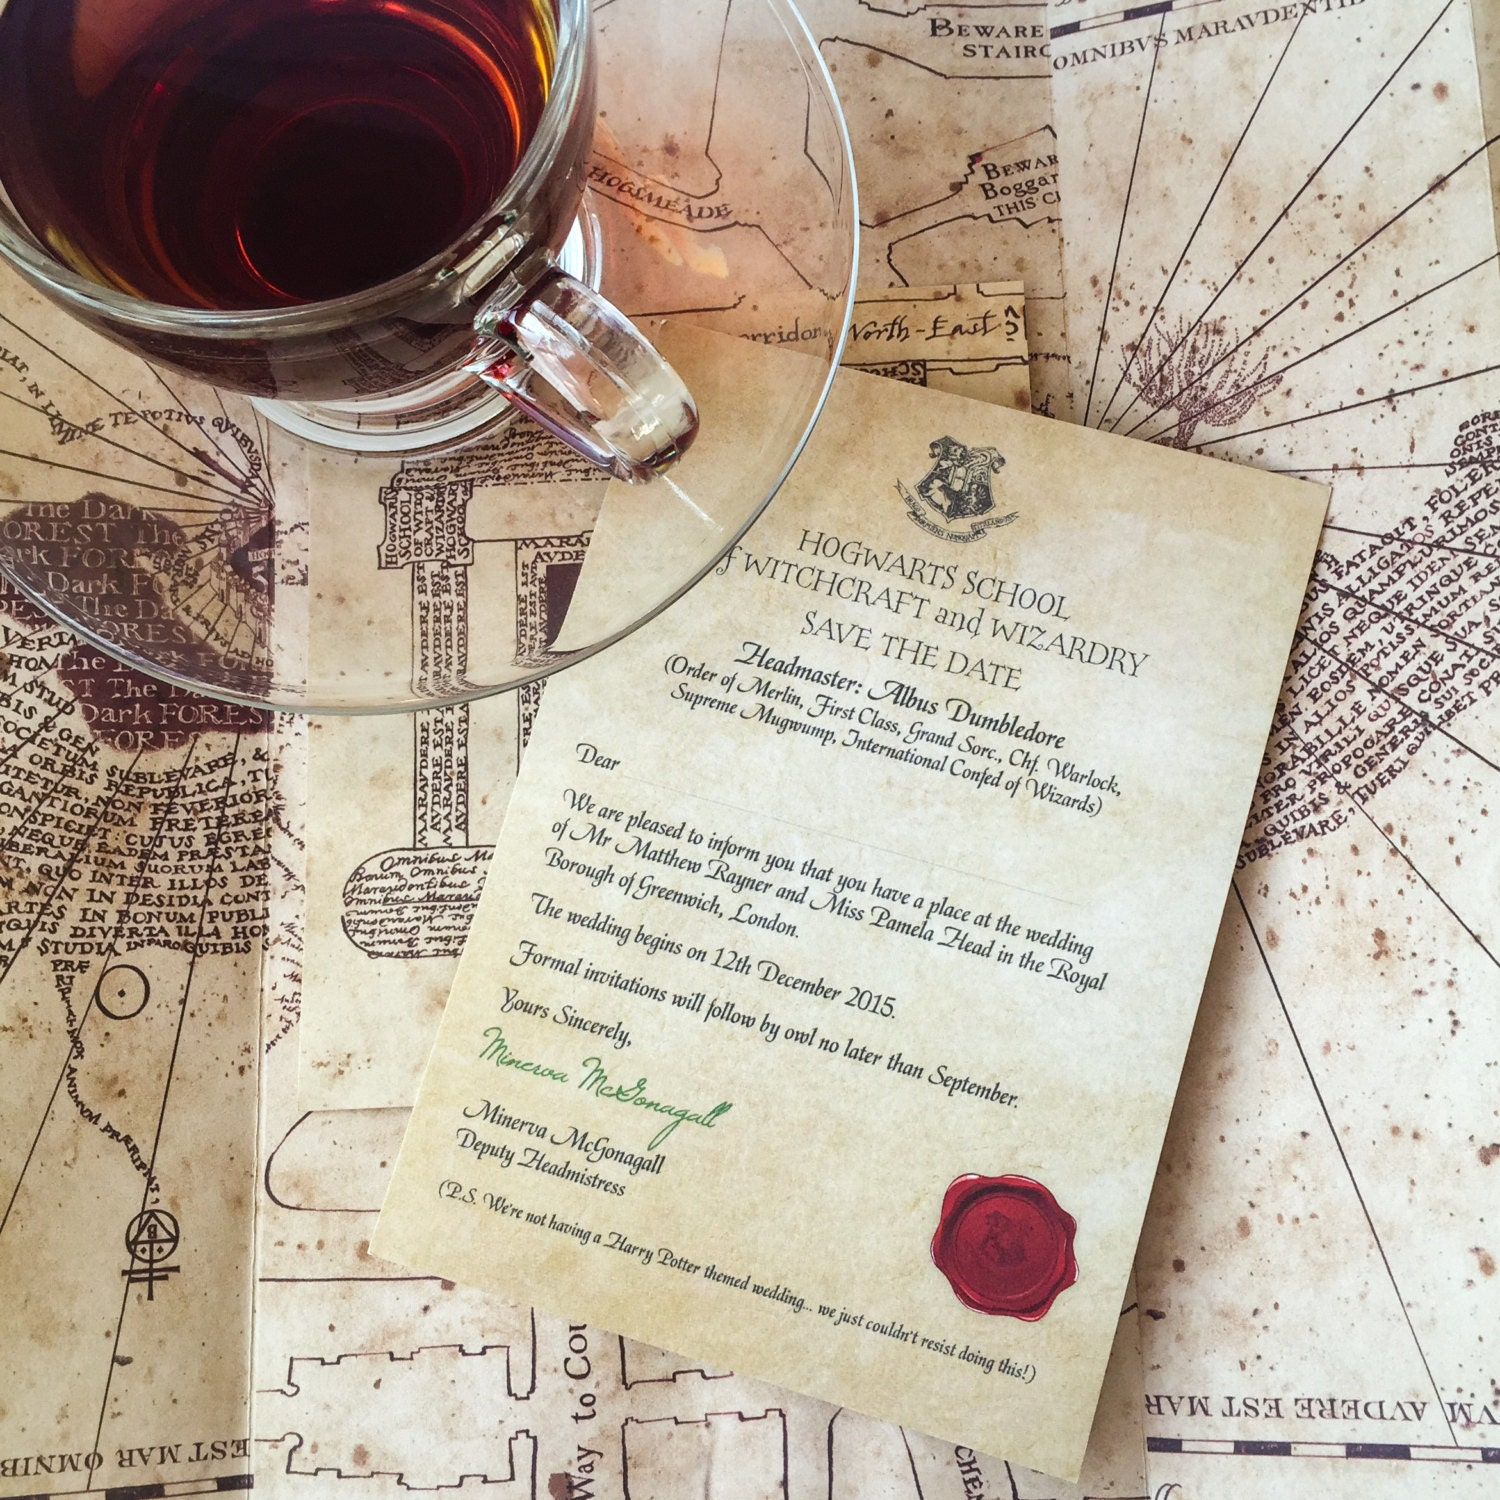 Hogwarts Acceptance Letter Save The Date Wedding Geeky Harry